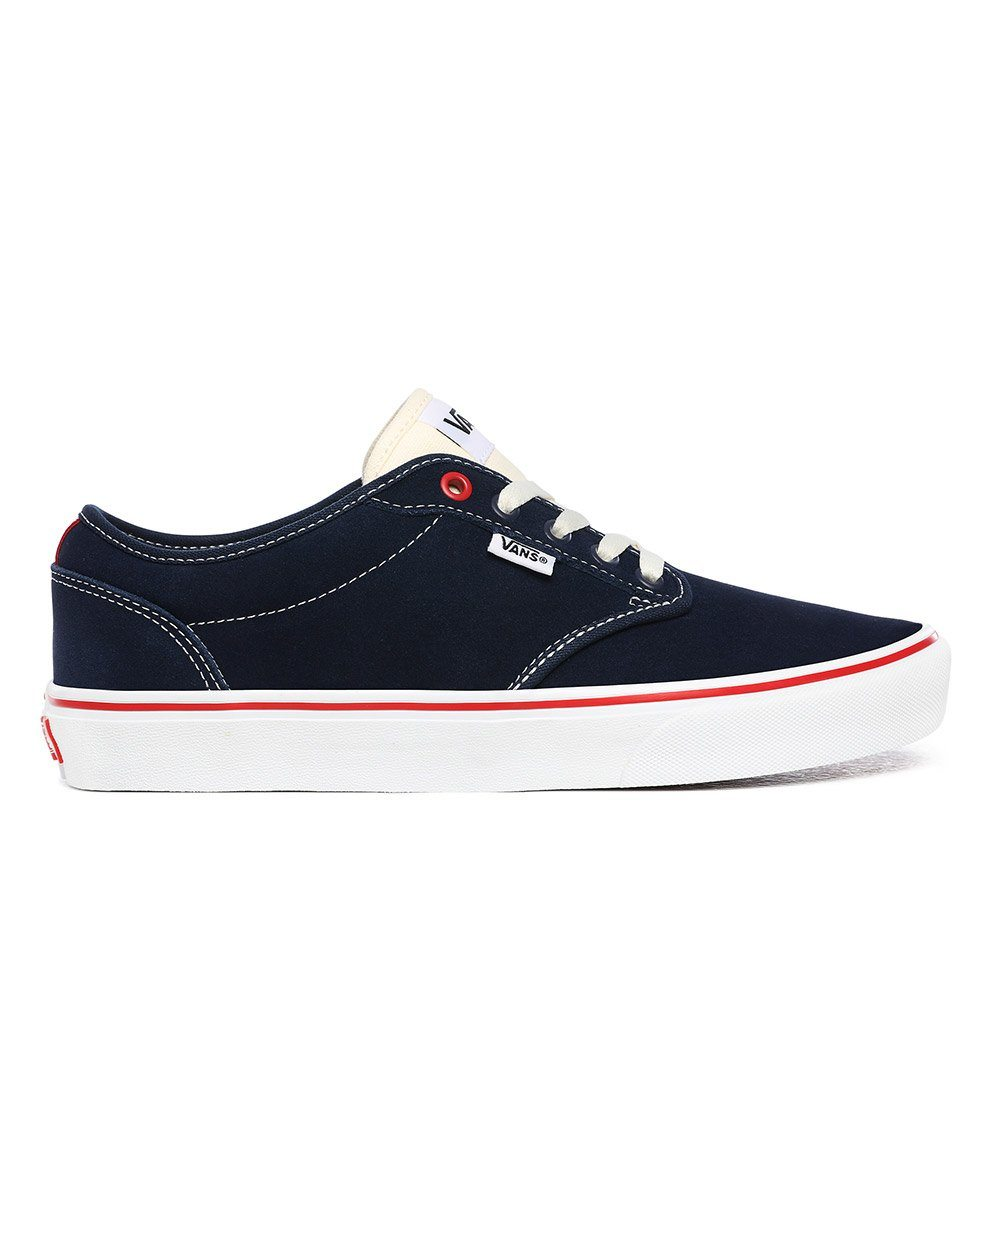 Vans Men's Atwood (Retro Sport) - Dress Blues/Chili Pepper SP-Footwear-Mens Vans